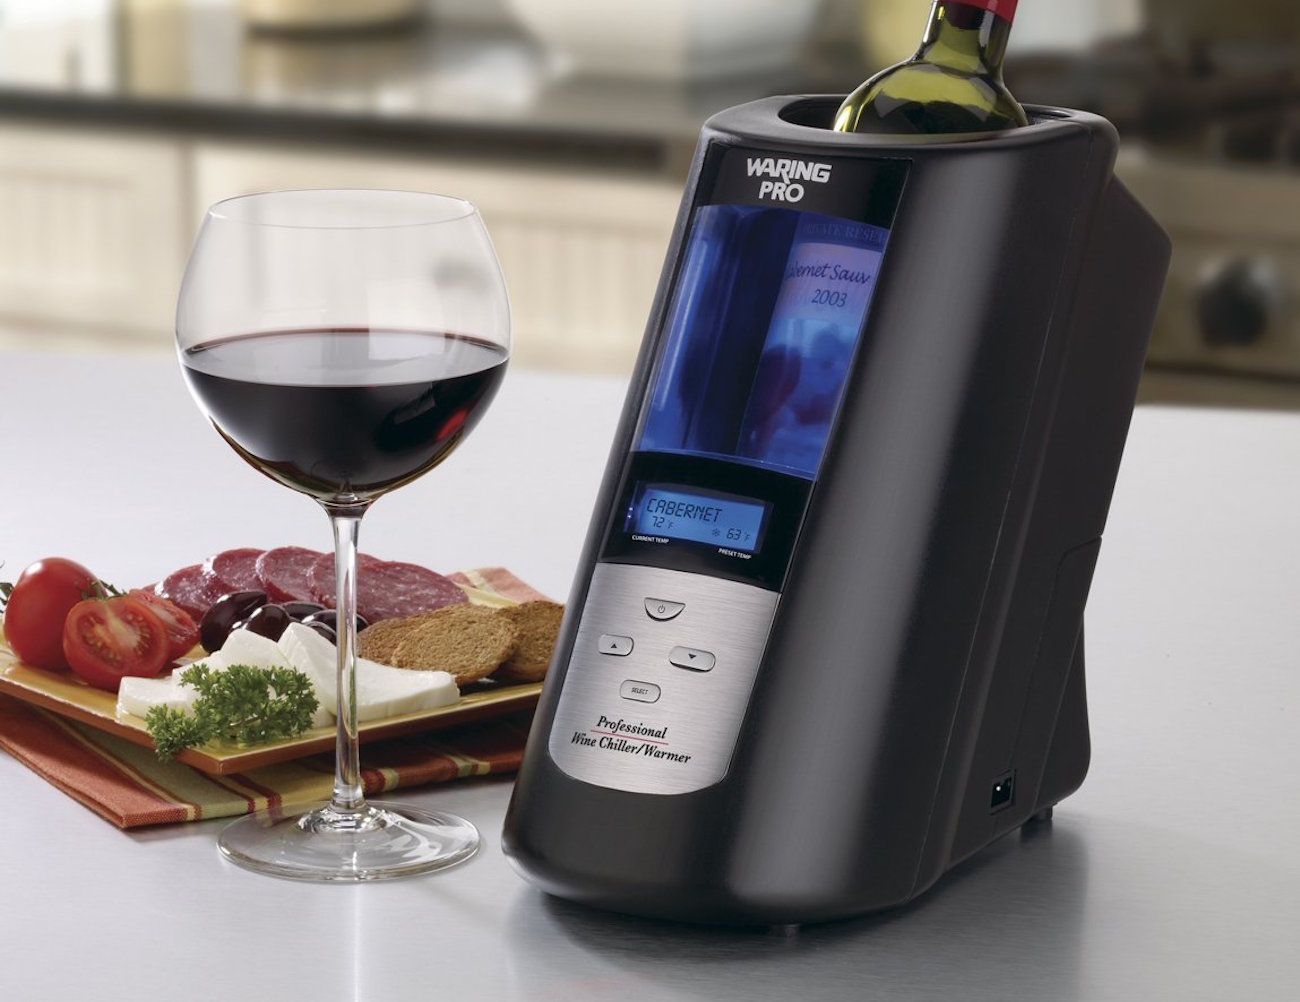 Waring Pro Wine Chiller and Warmer